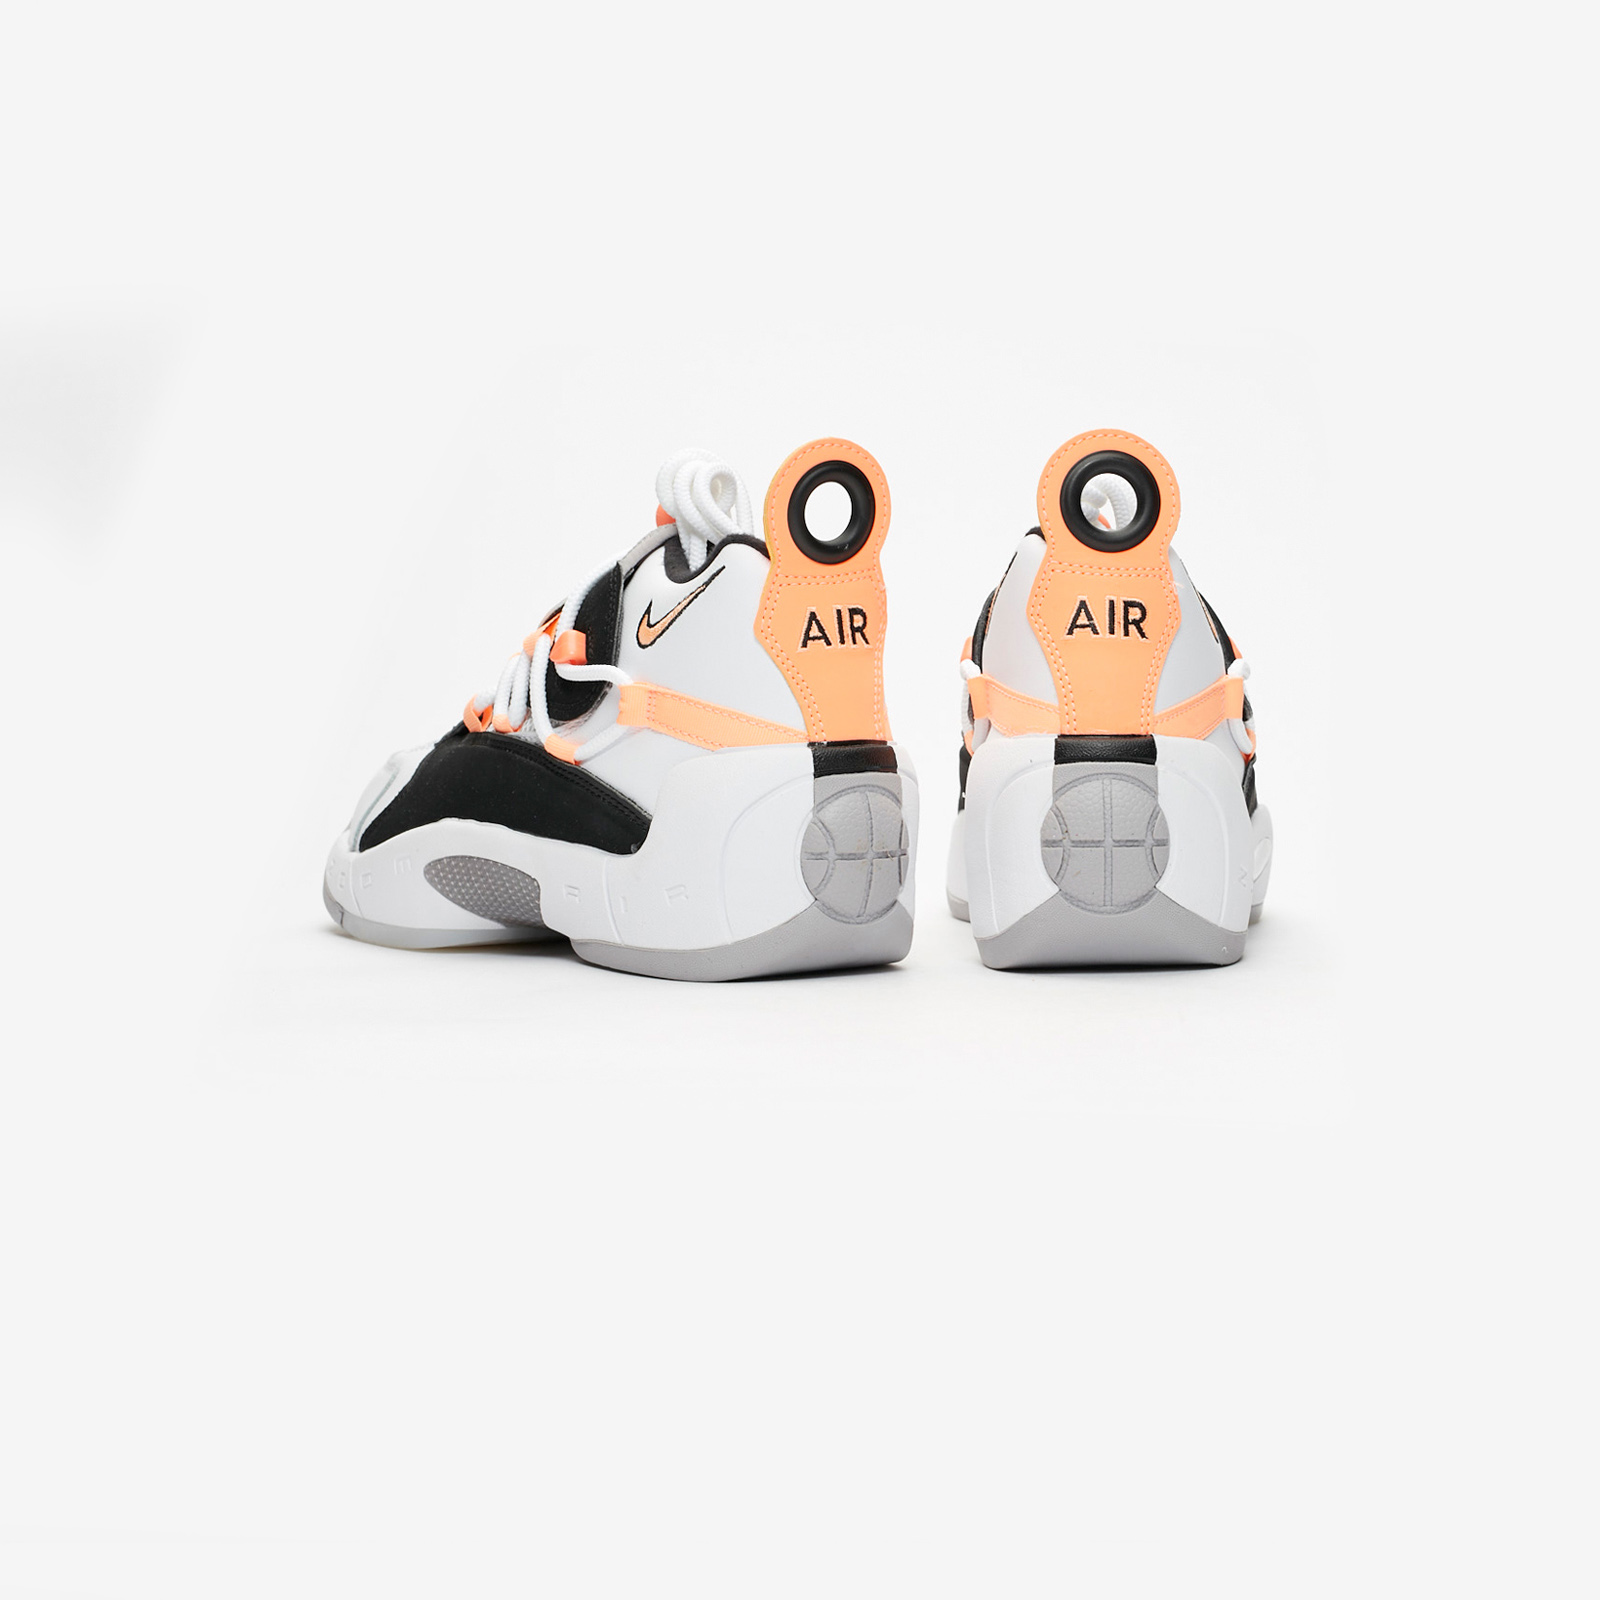 70e4b2c3a55 Nike Wmns Air Swoopes II - 917592-102 - Sneakersnstuff